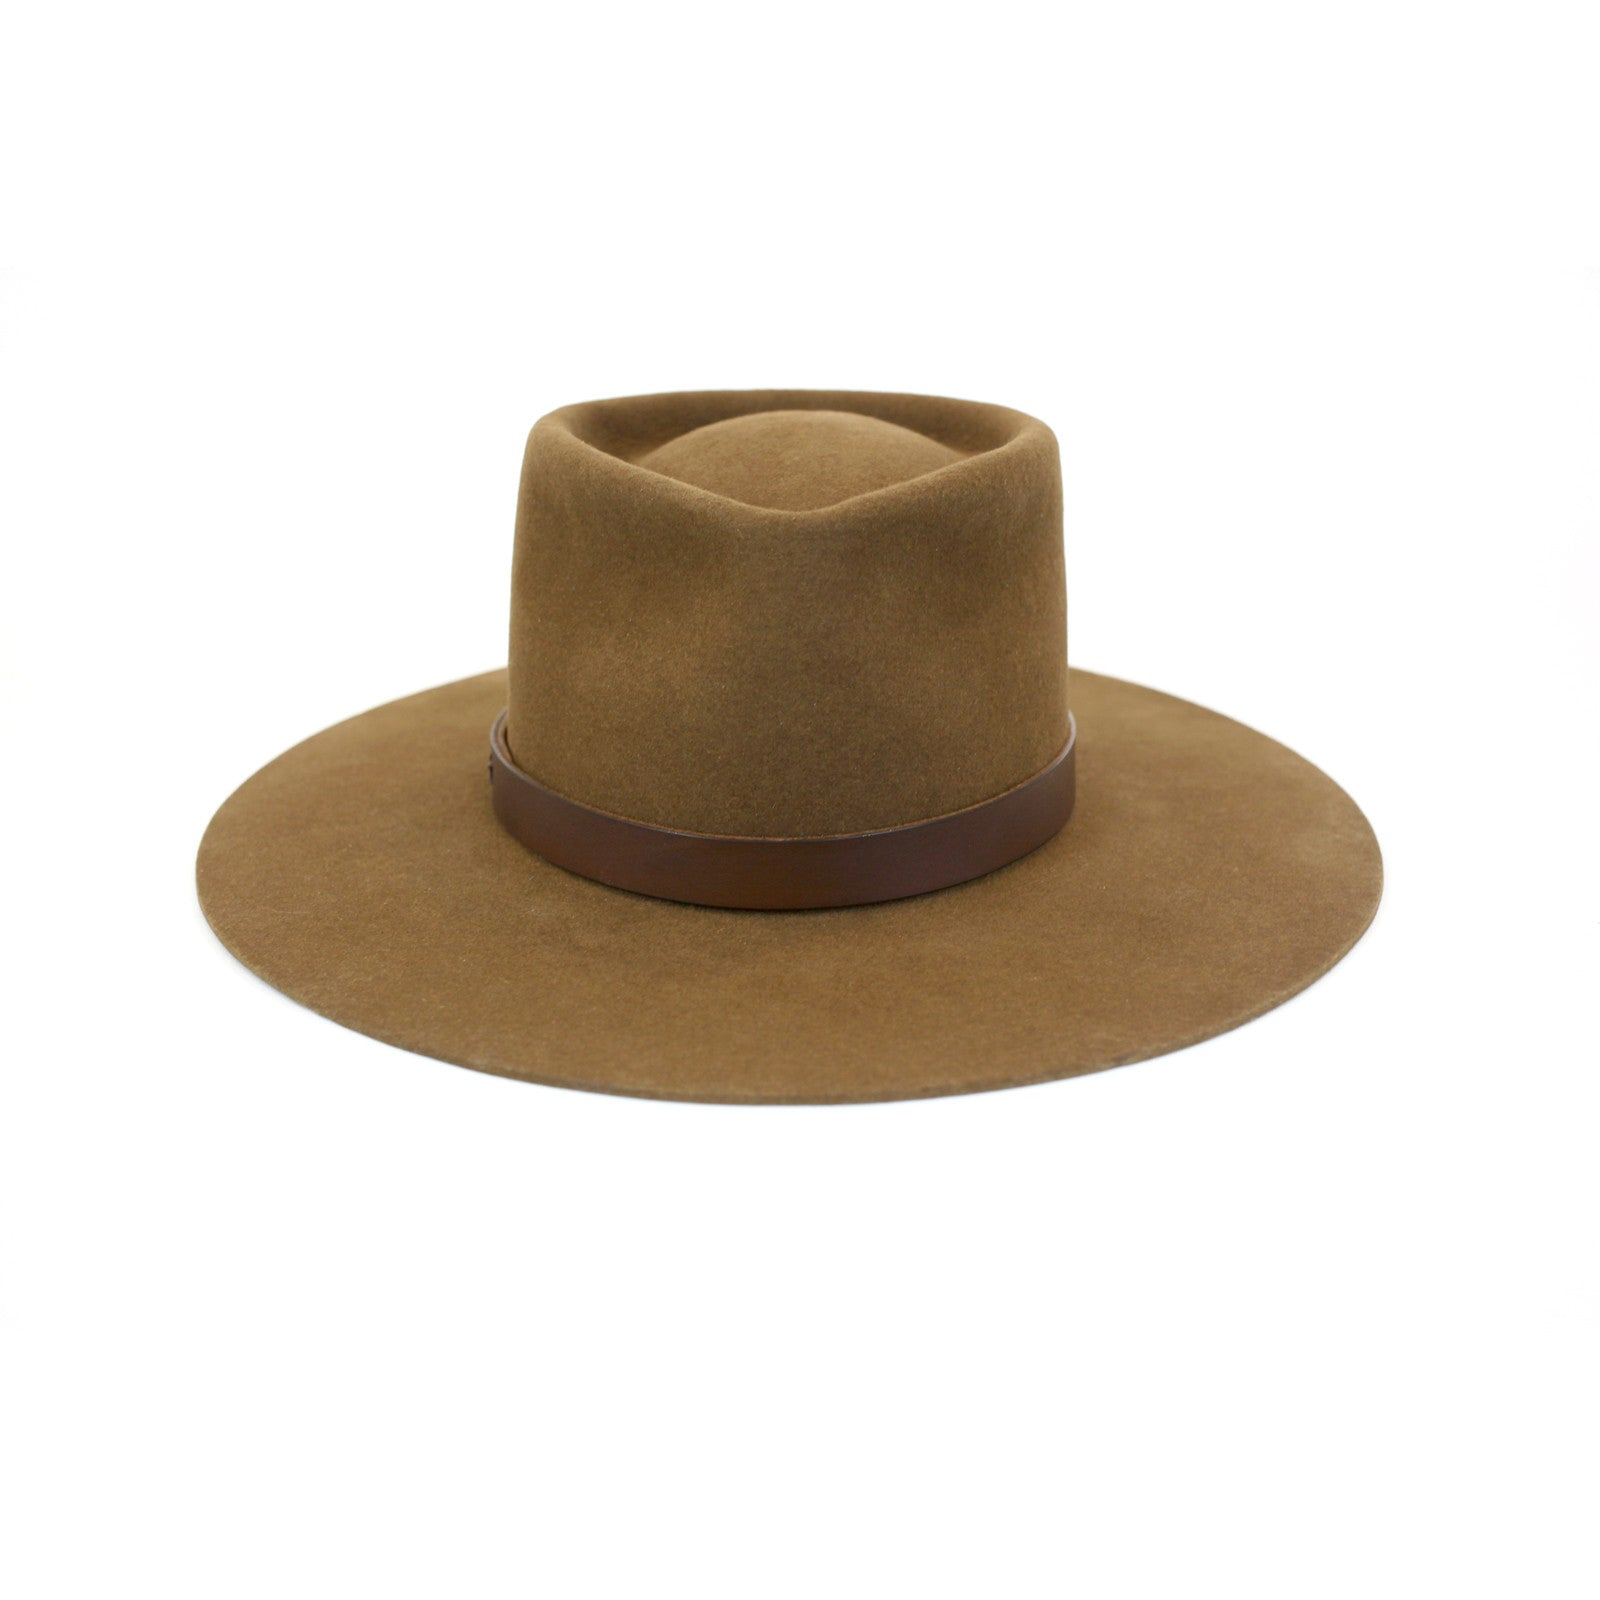 felt hat, cowboy hat, western hat, folklore, red clouds hat, dirty harry, high noon hat, billy the kid, hell on wheels, made in usa